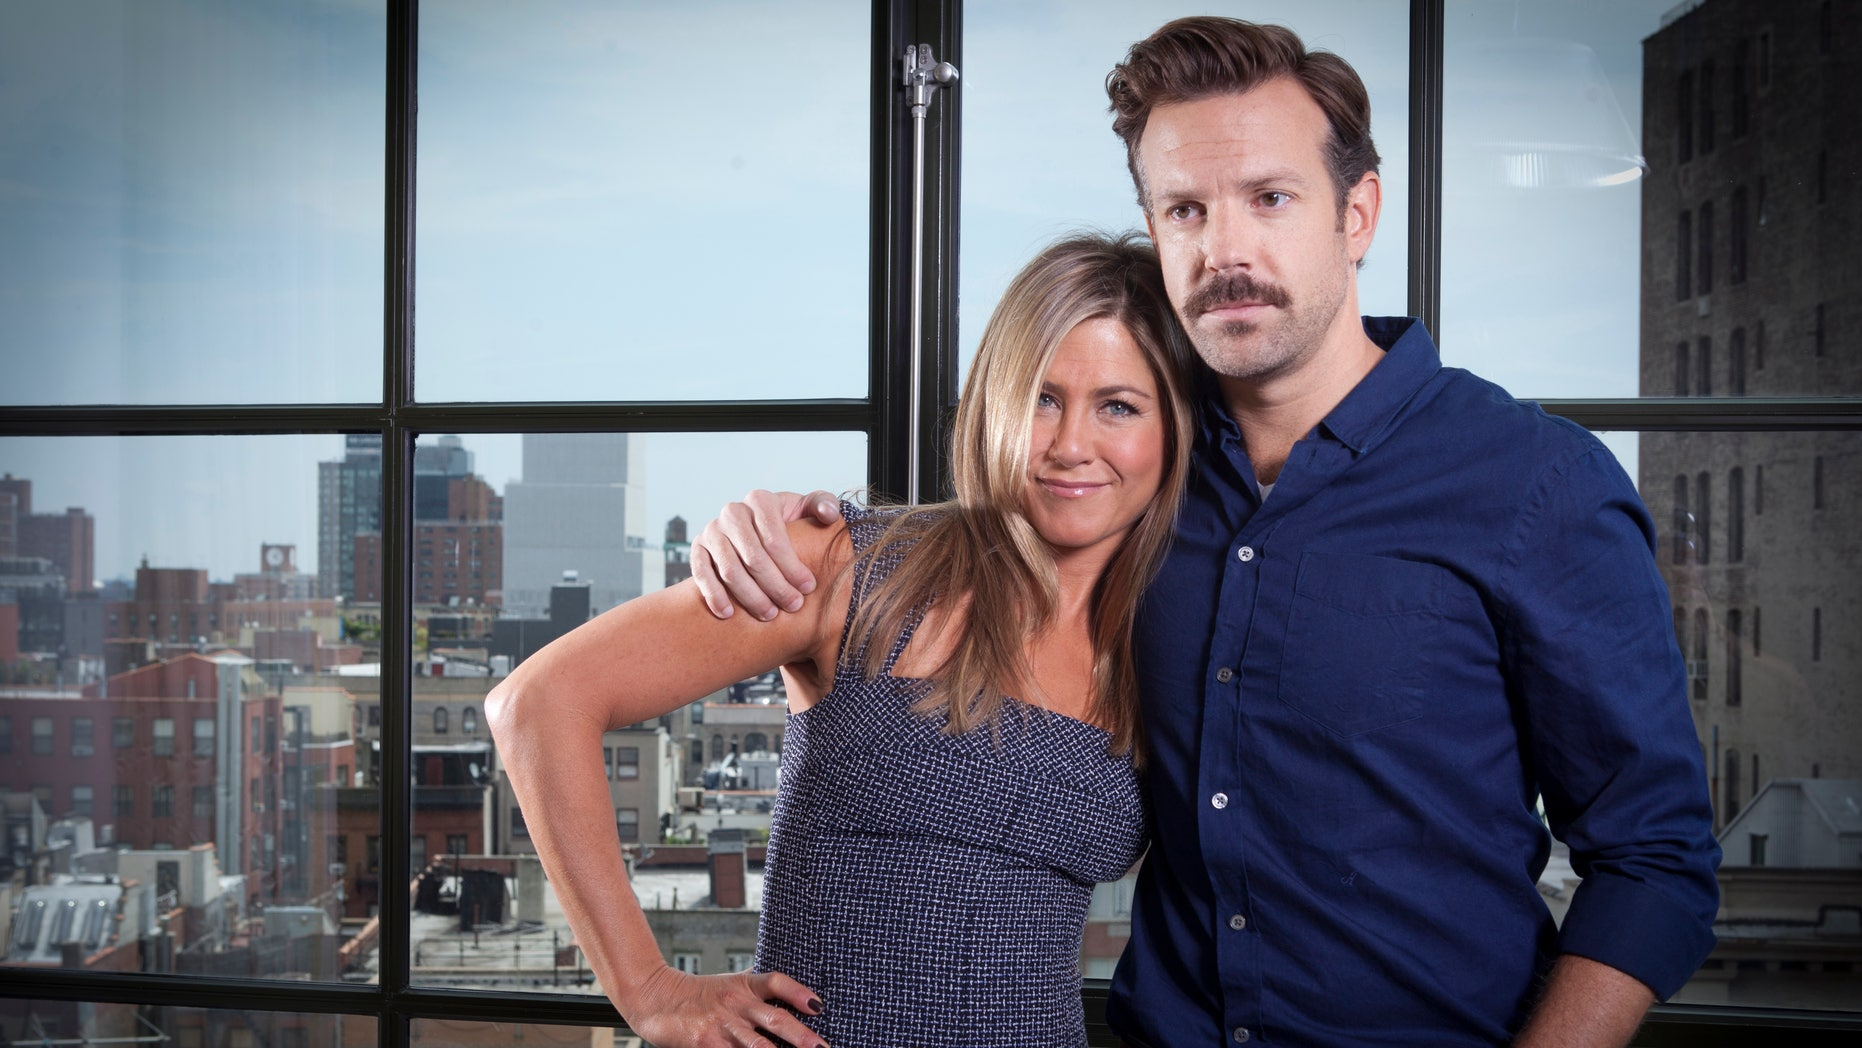 """FILE - In this July 27, 2013 file photo, actor Jason Sudeikis, right, and actress Jennifer Aniston pose for a portrait as they promote the movie """"We're the Millers"""" in New York. The film opens nationwide on Wednesday, Aug. 7. (Photo by Carlo Allegri/Invision/AP, File)"""